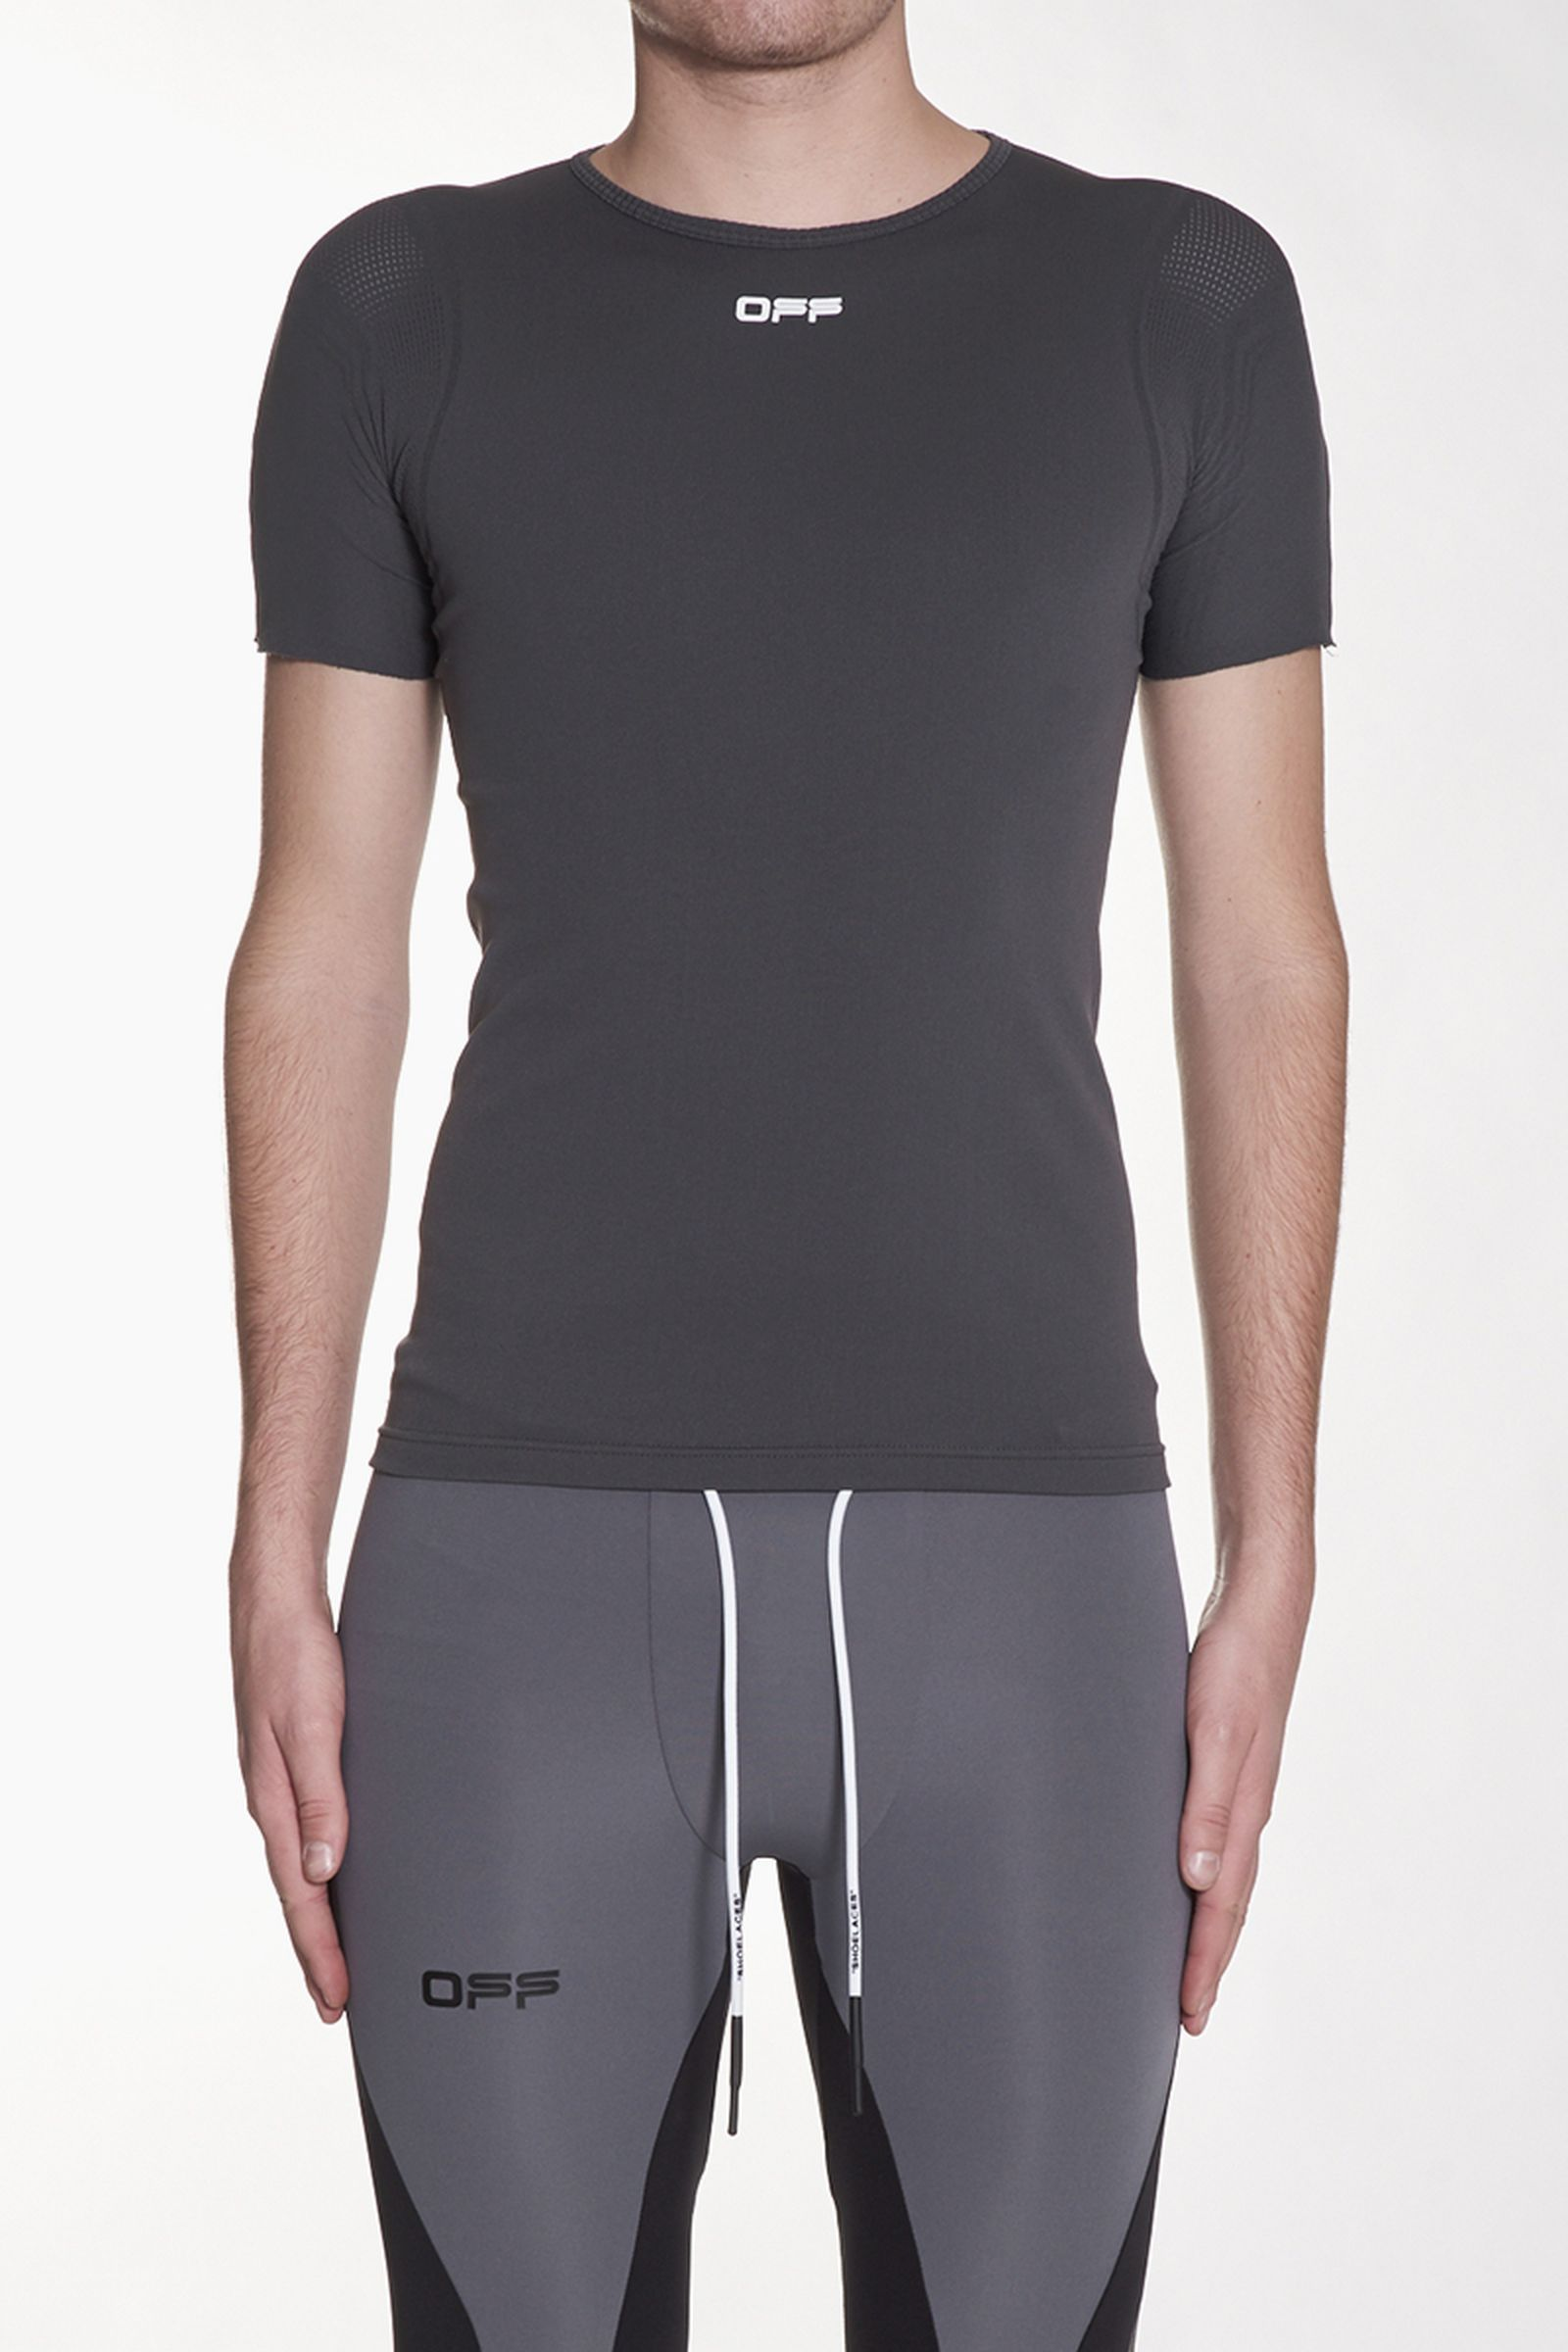 20off-white-activewear-off-active